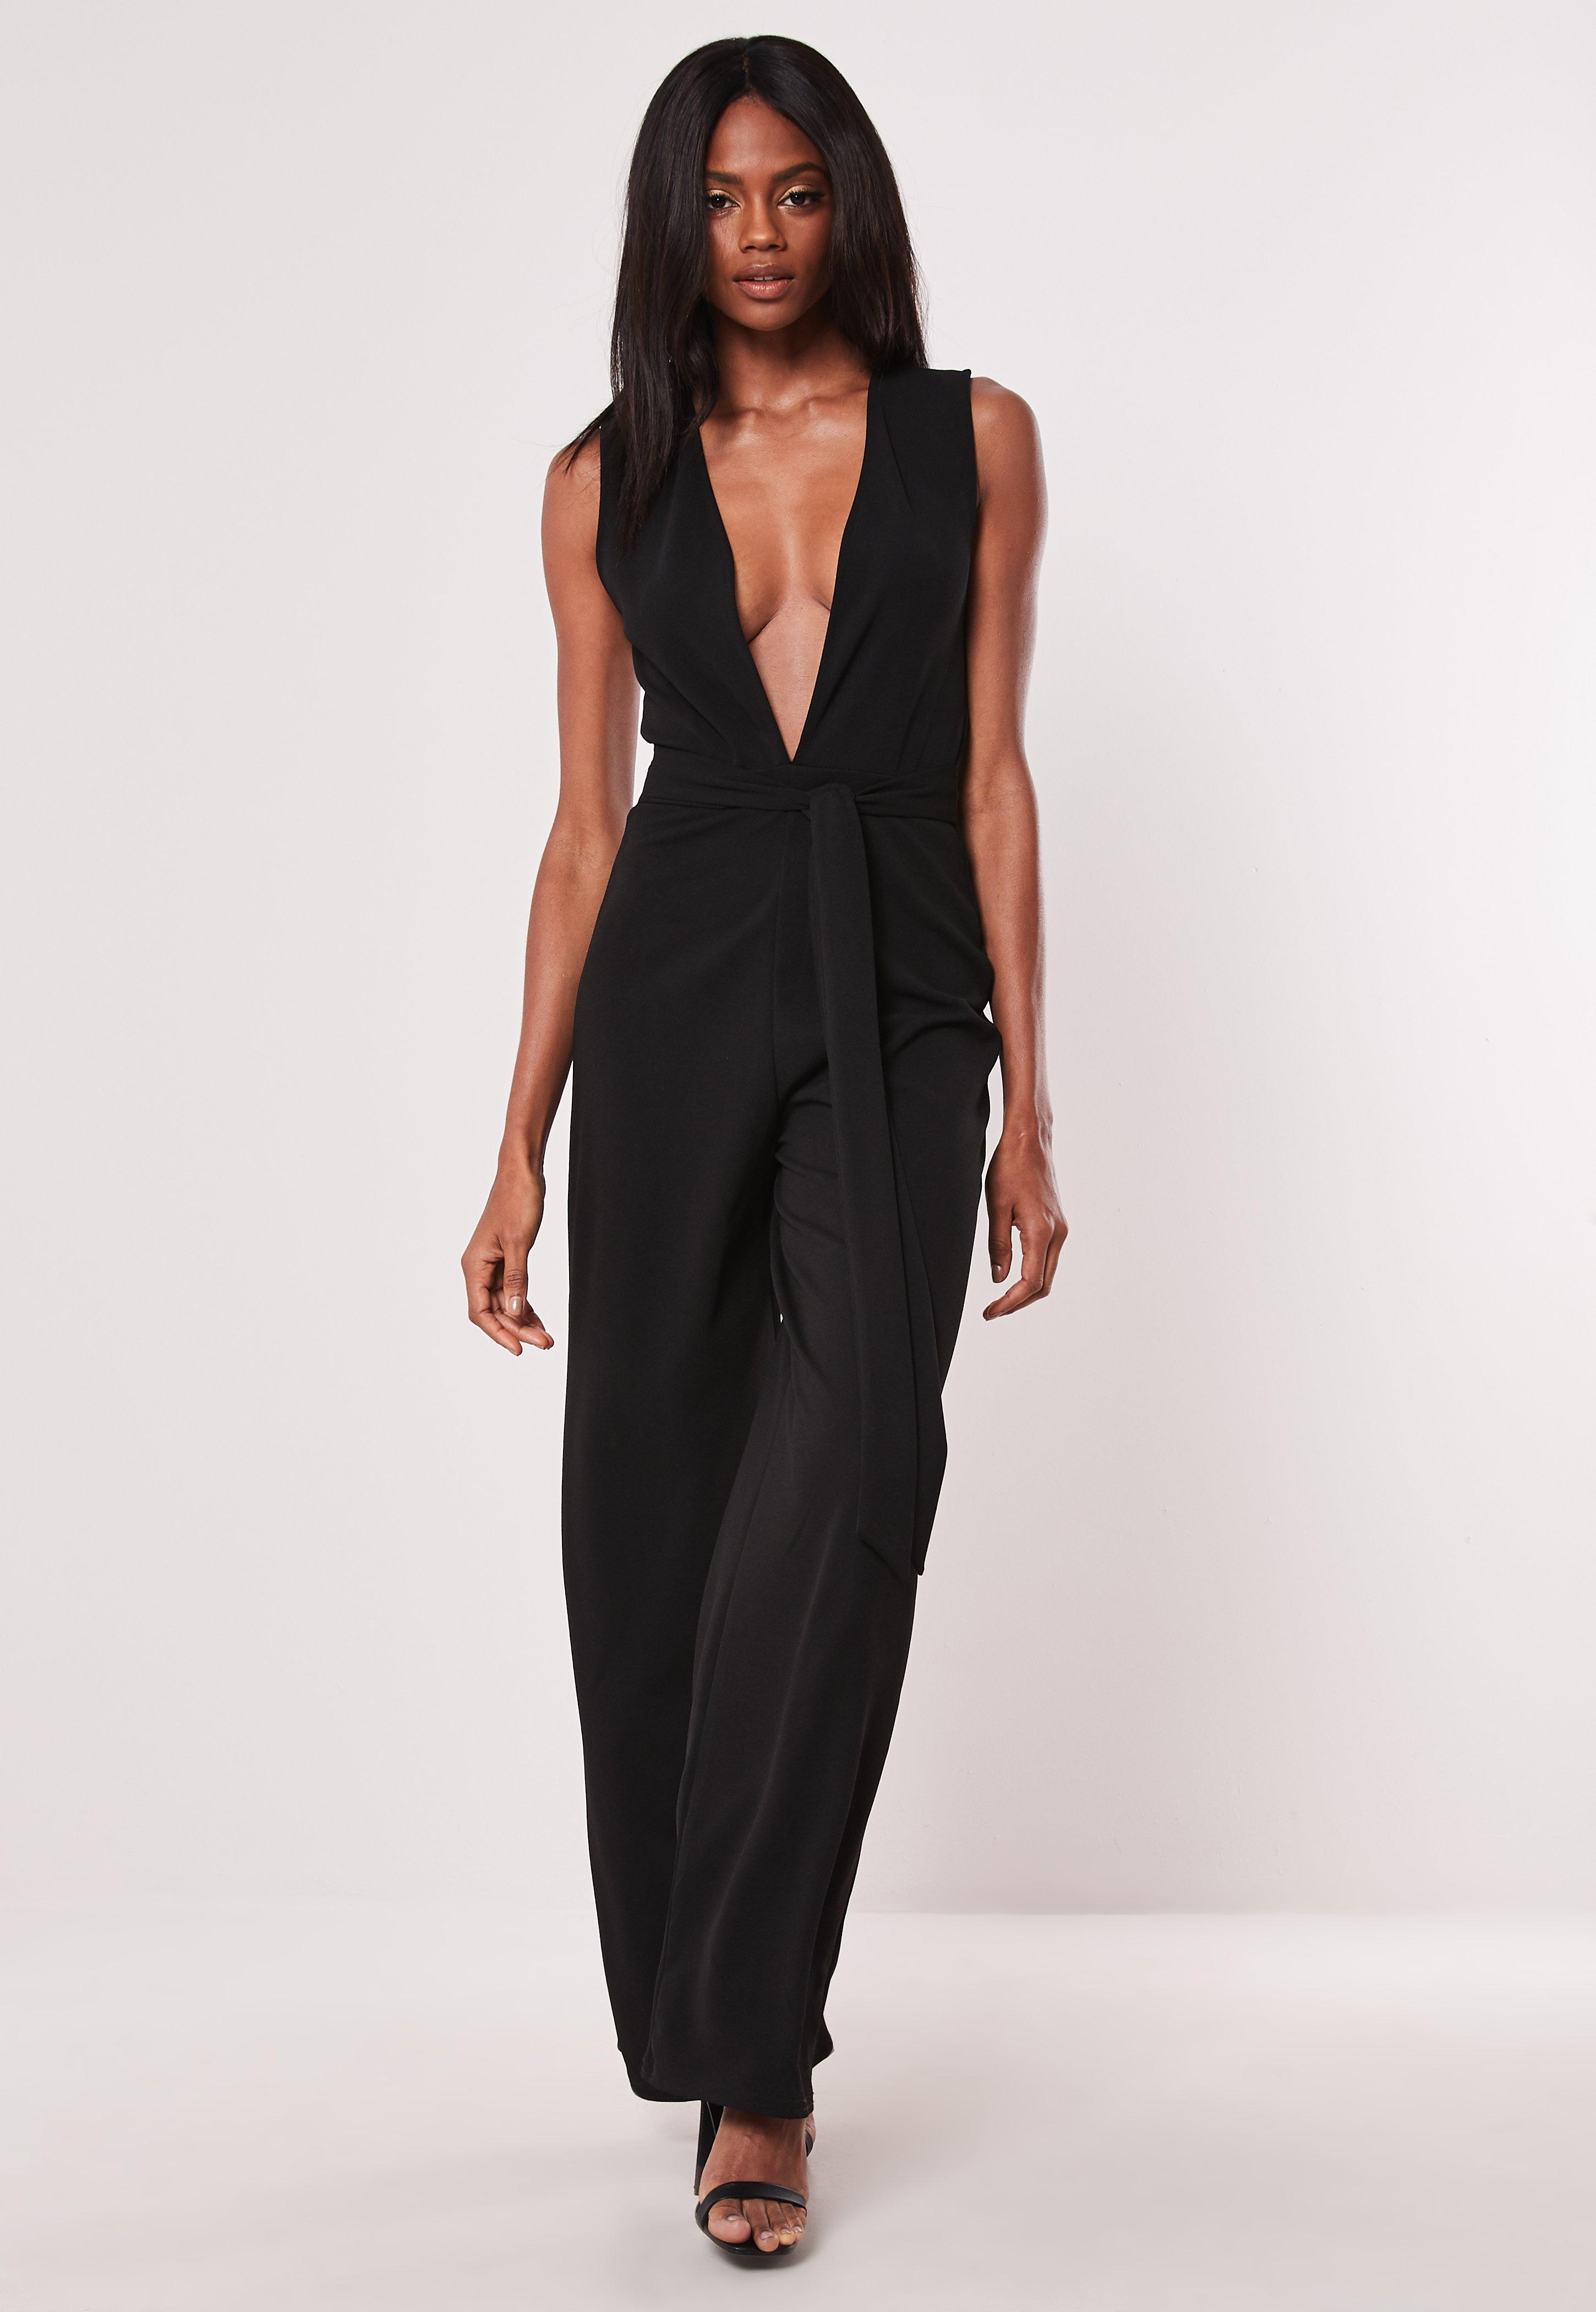 bdba5678f312 Black Jumpsuits